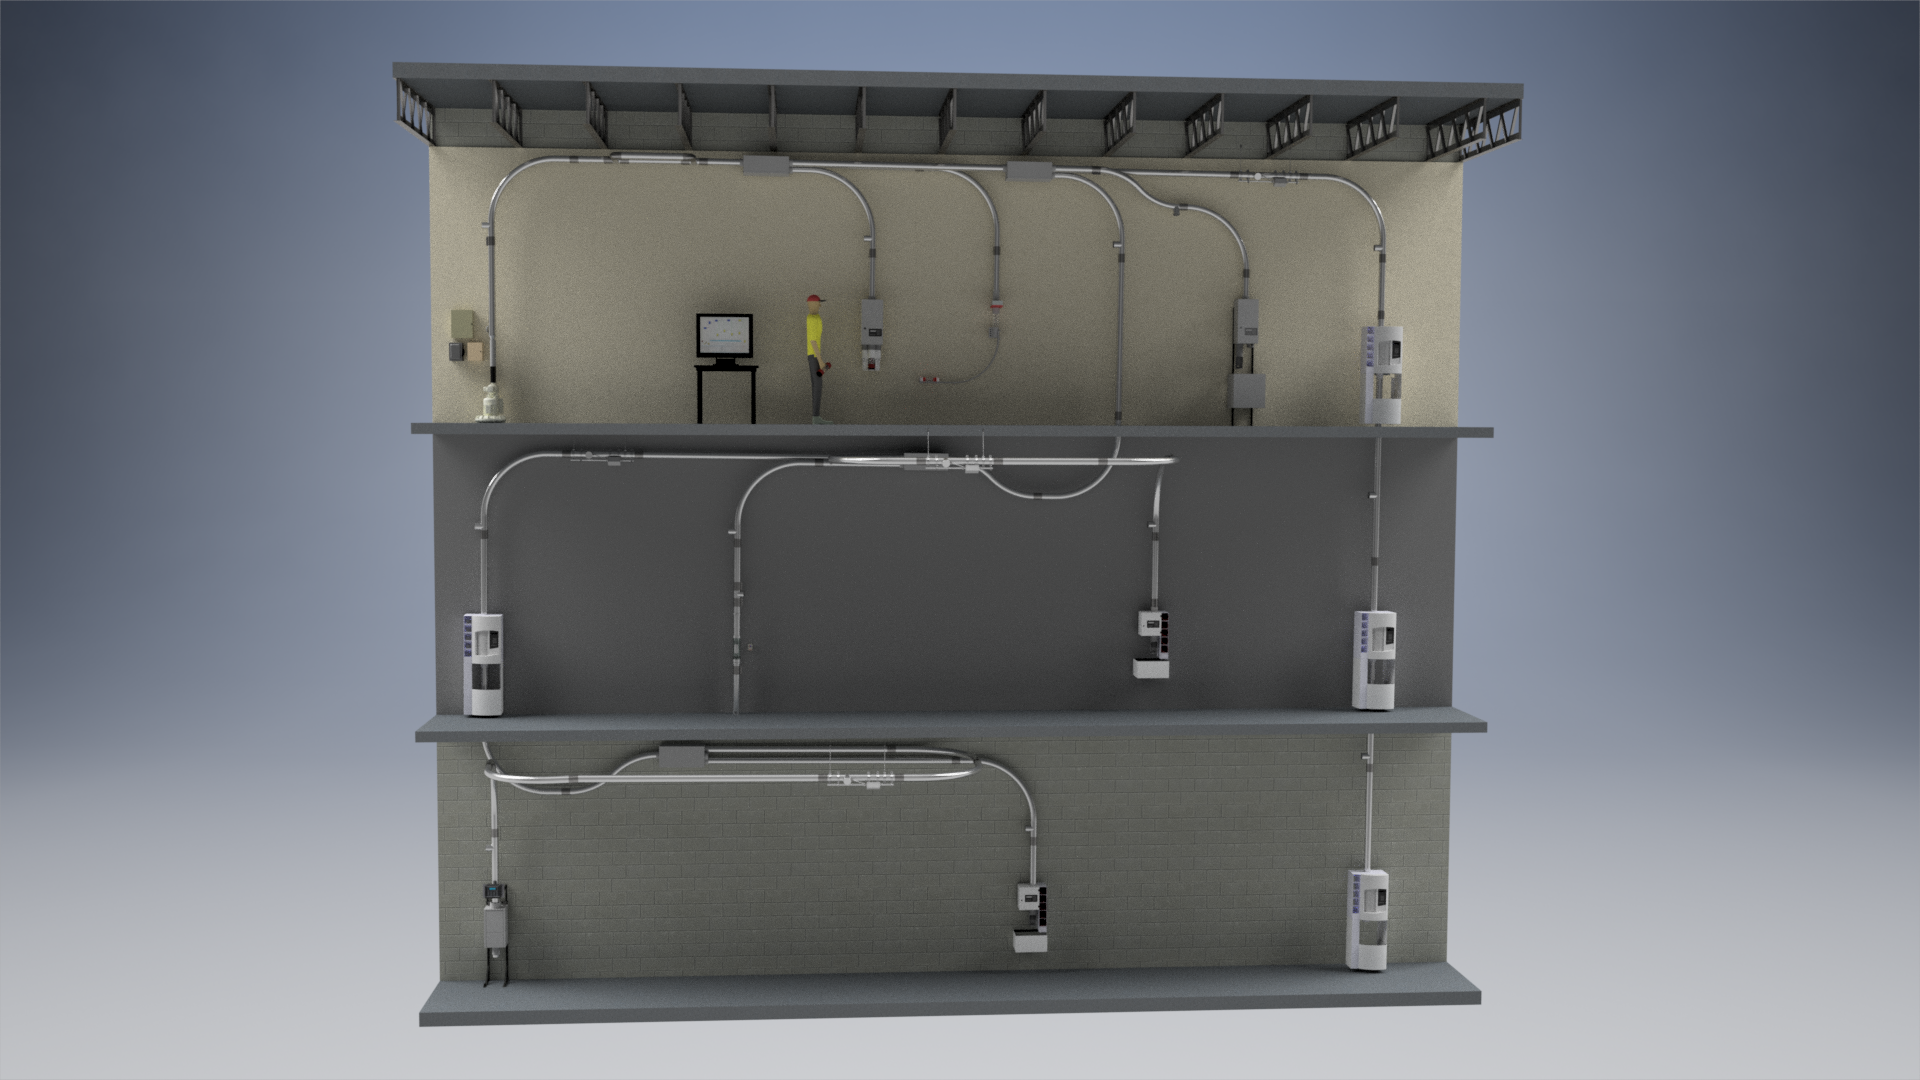 AC3000 Pneumatic Tube System Schematic Render